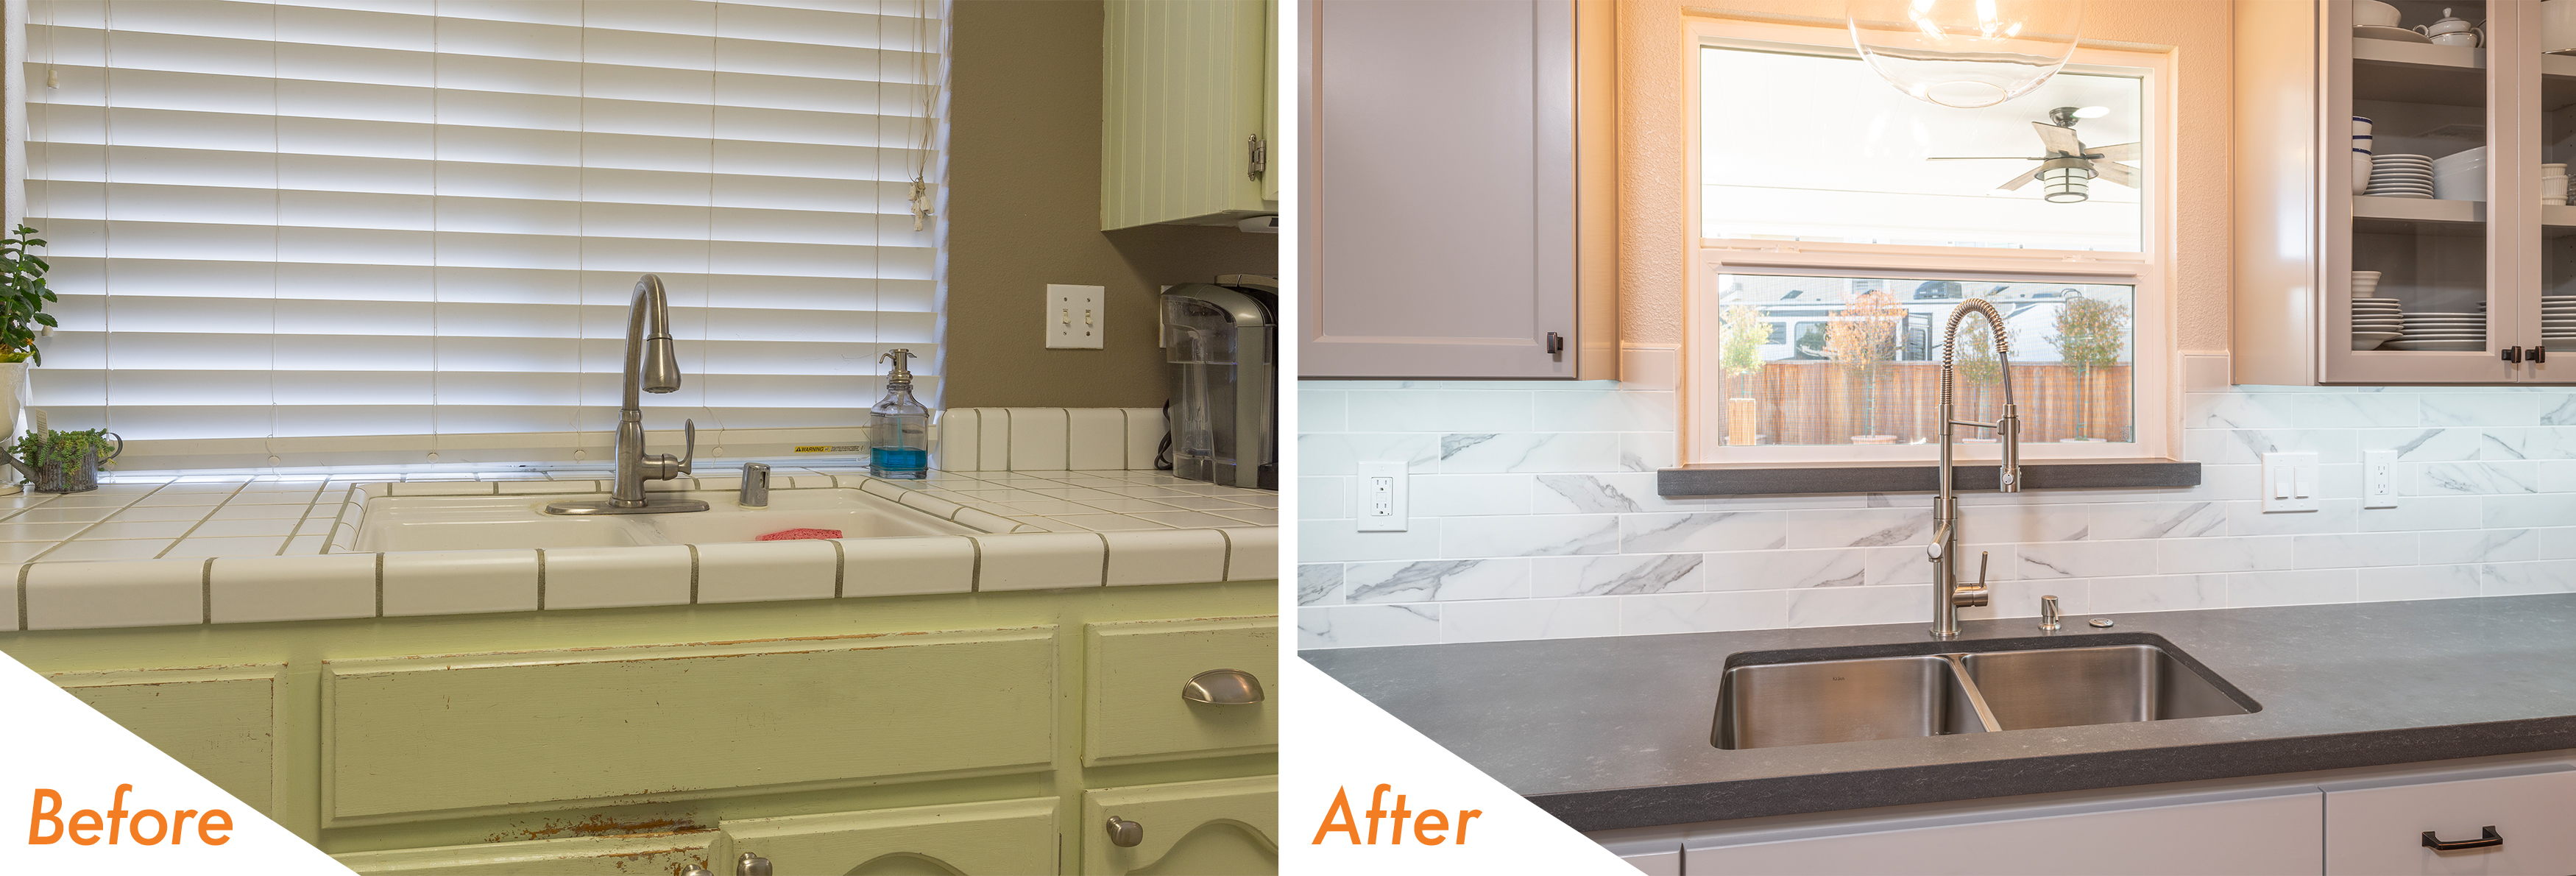 Before & After Custom Kitchen Remodel